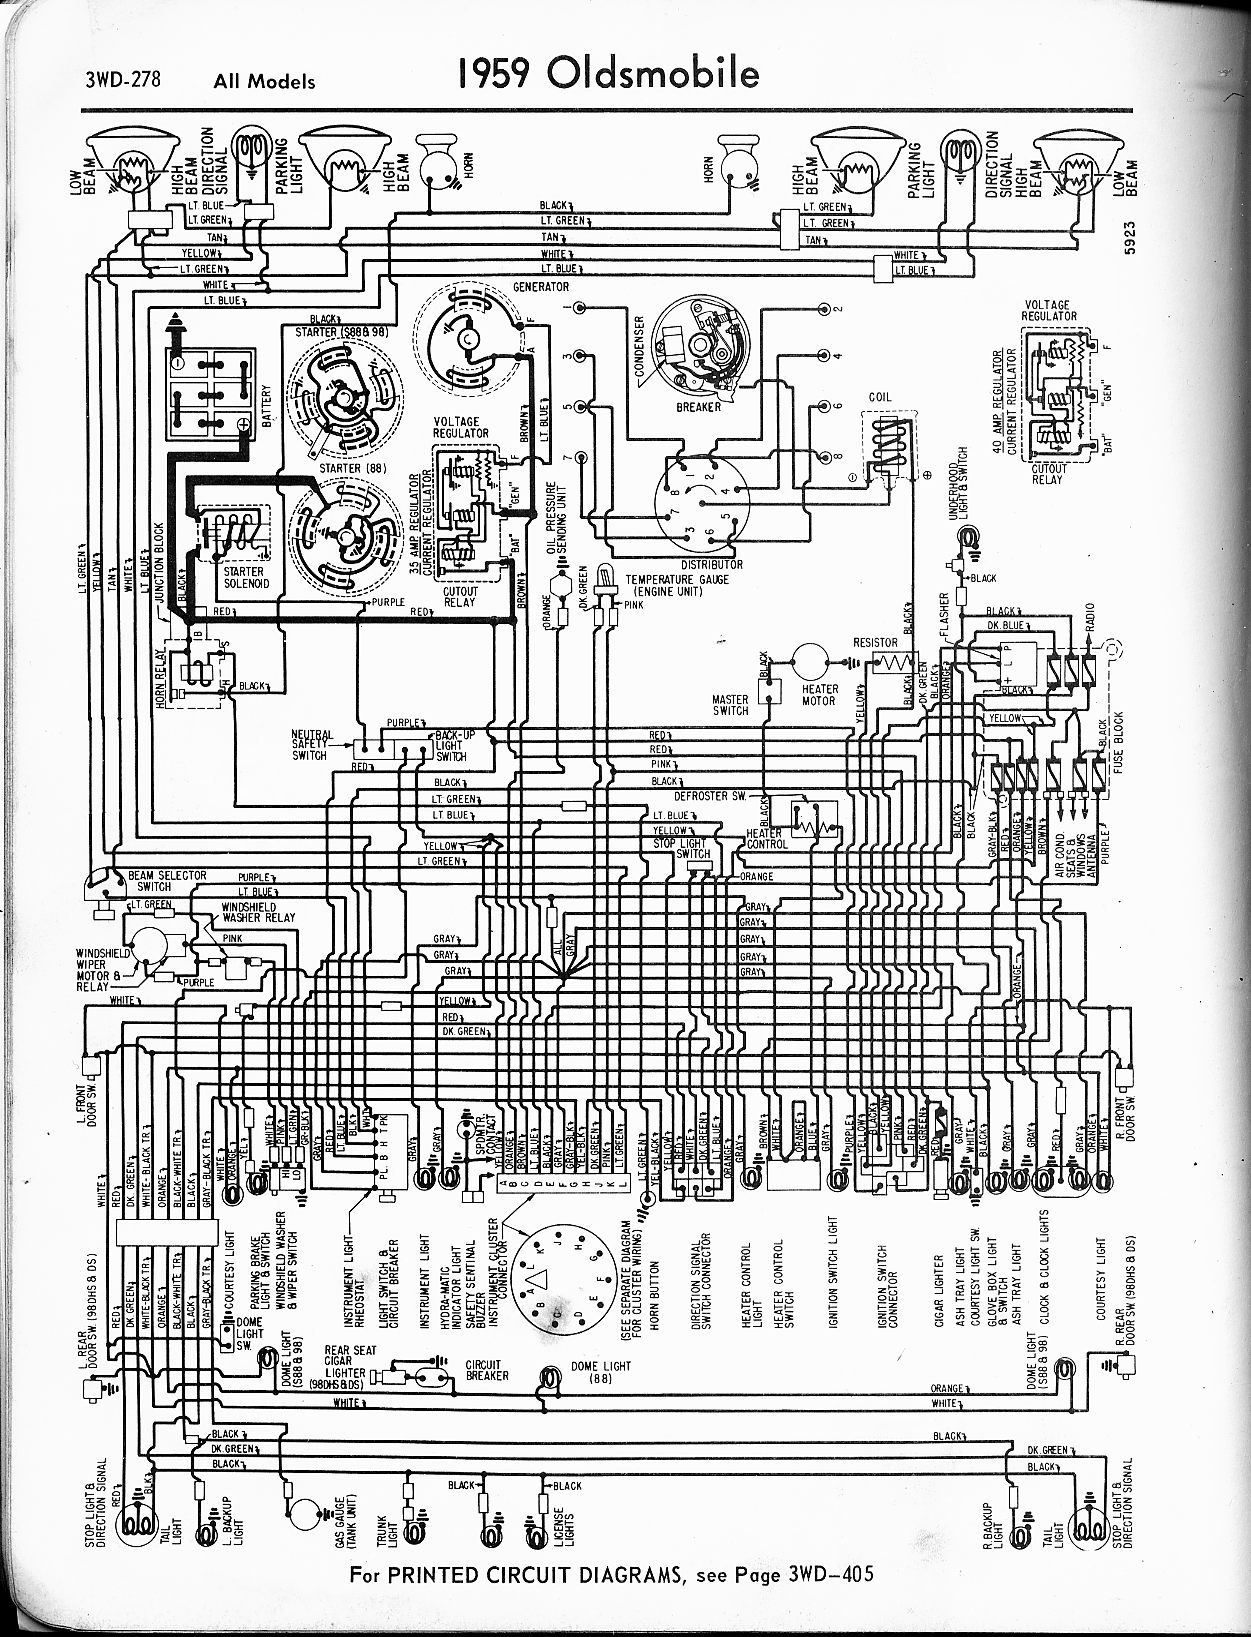 layout for 2003 toyota sienna fuse box schematic diagrams toyota sienna  rocker arm 2004 toyota sienna